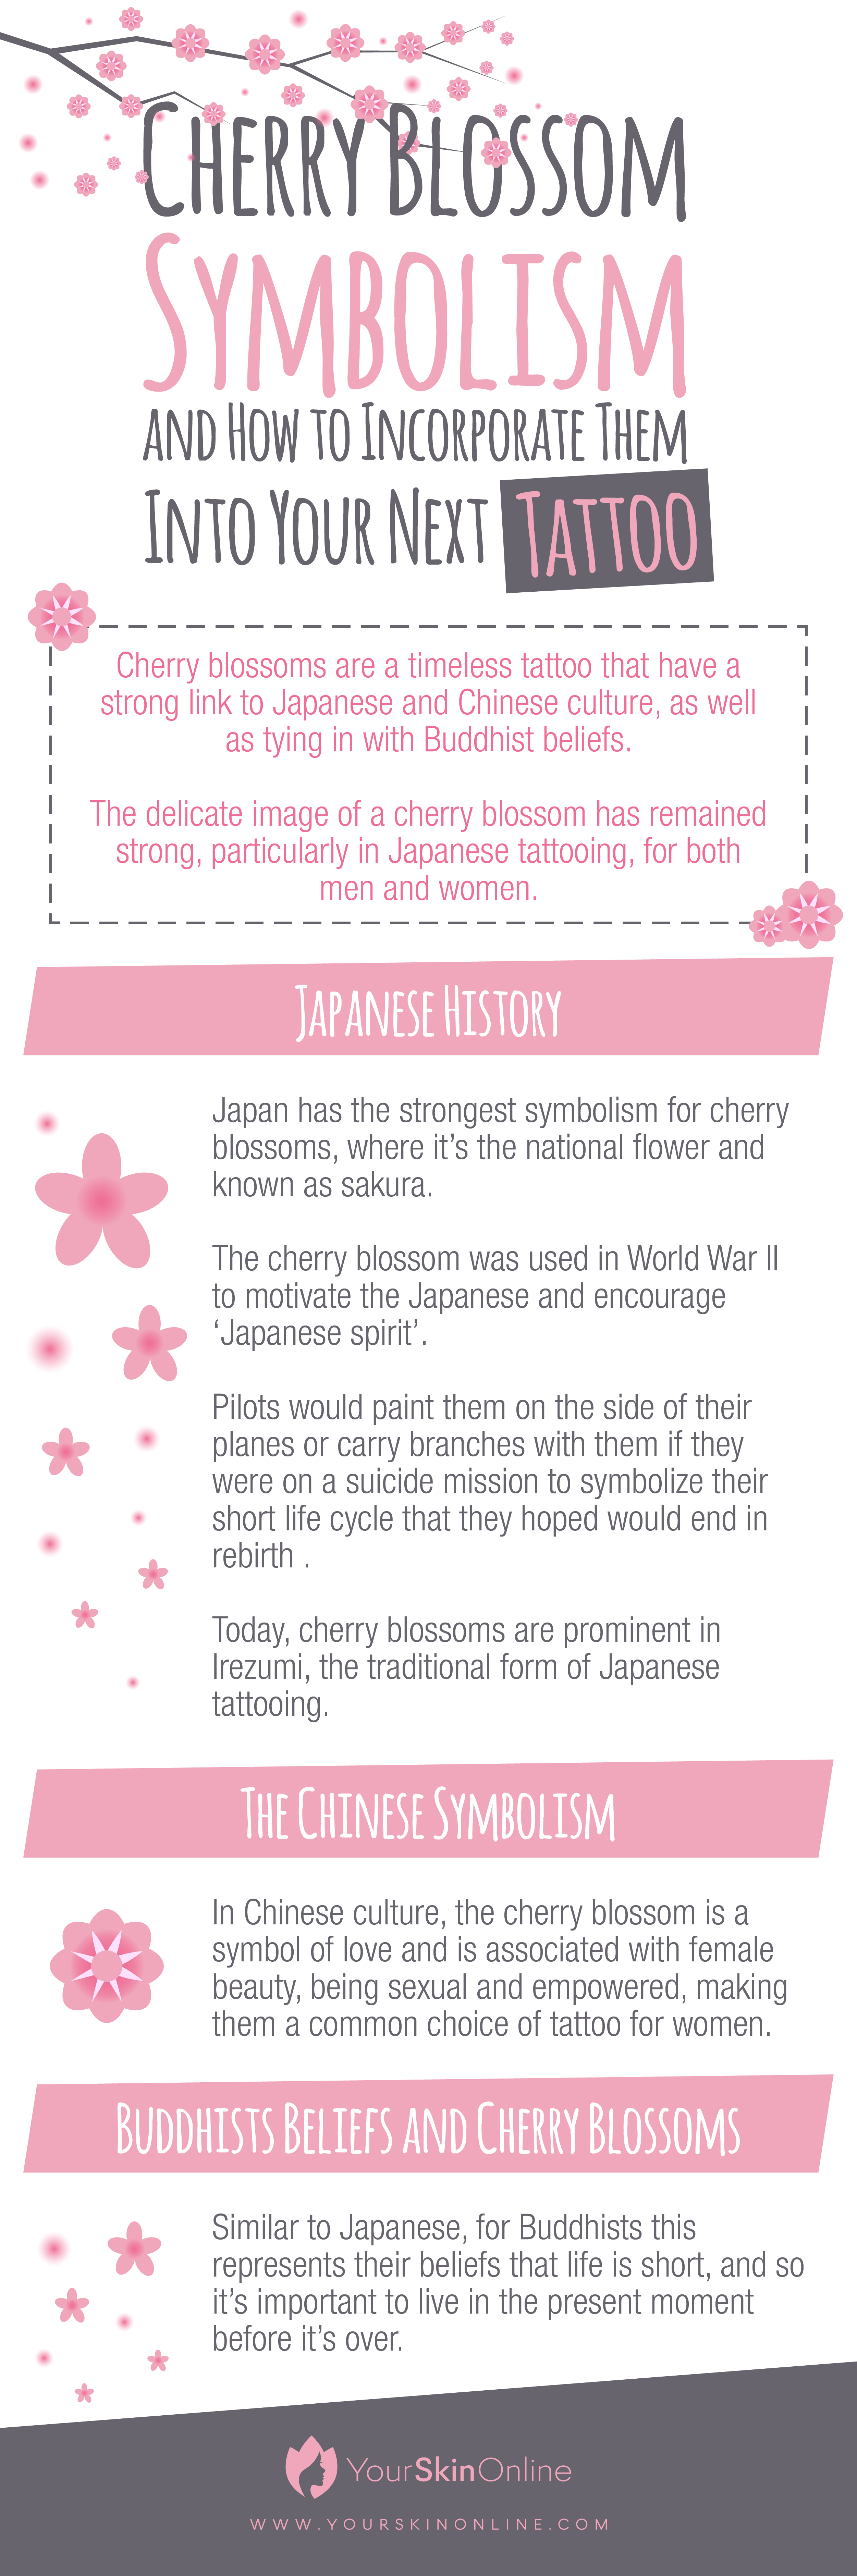 Cherry Blossoms Are A Timeless Tattoo That Have A Strong Link To Japanese And Chinese Culture As Wel Cherry Blossom Symbolism Buddhist Beliefs Timeless Tattoo